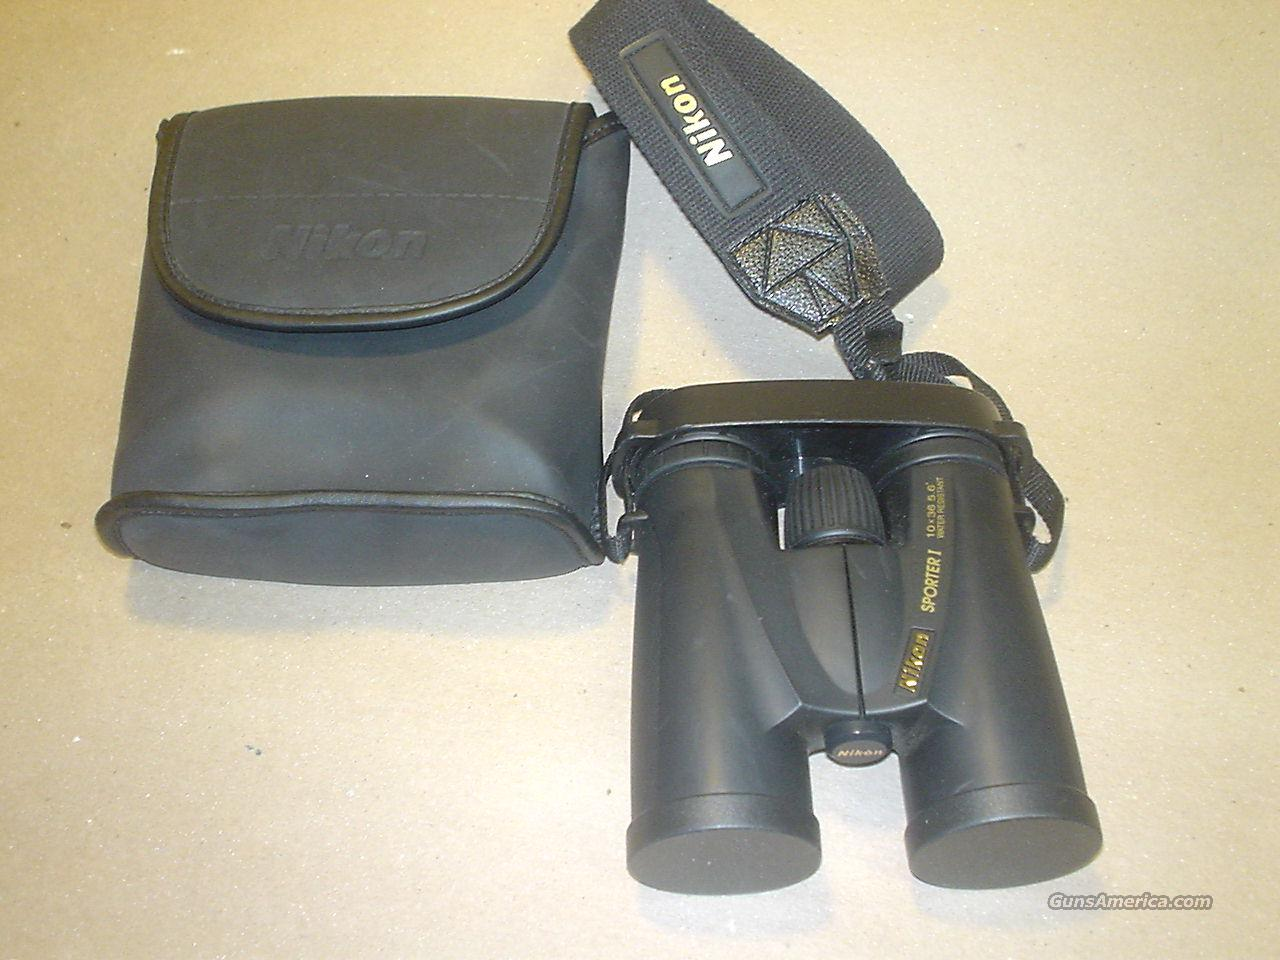 Nikon Sporter I  Non-Guns > Scopes/Mounts/Rings & Optics > Non-Scope Optics > Binoculars